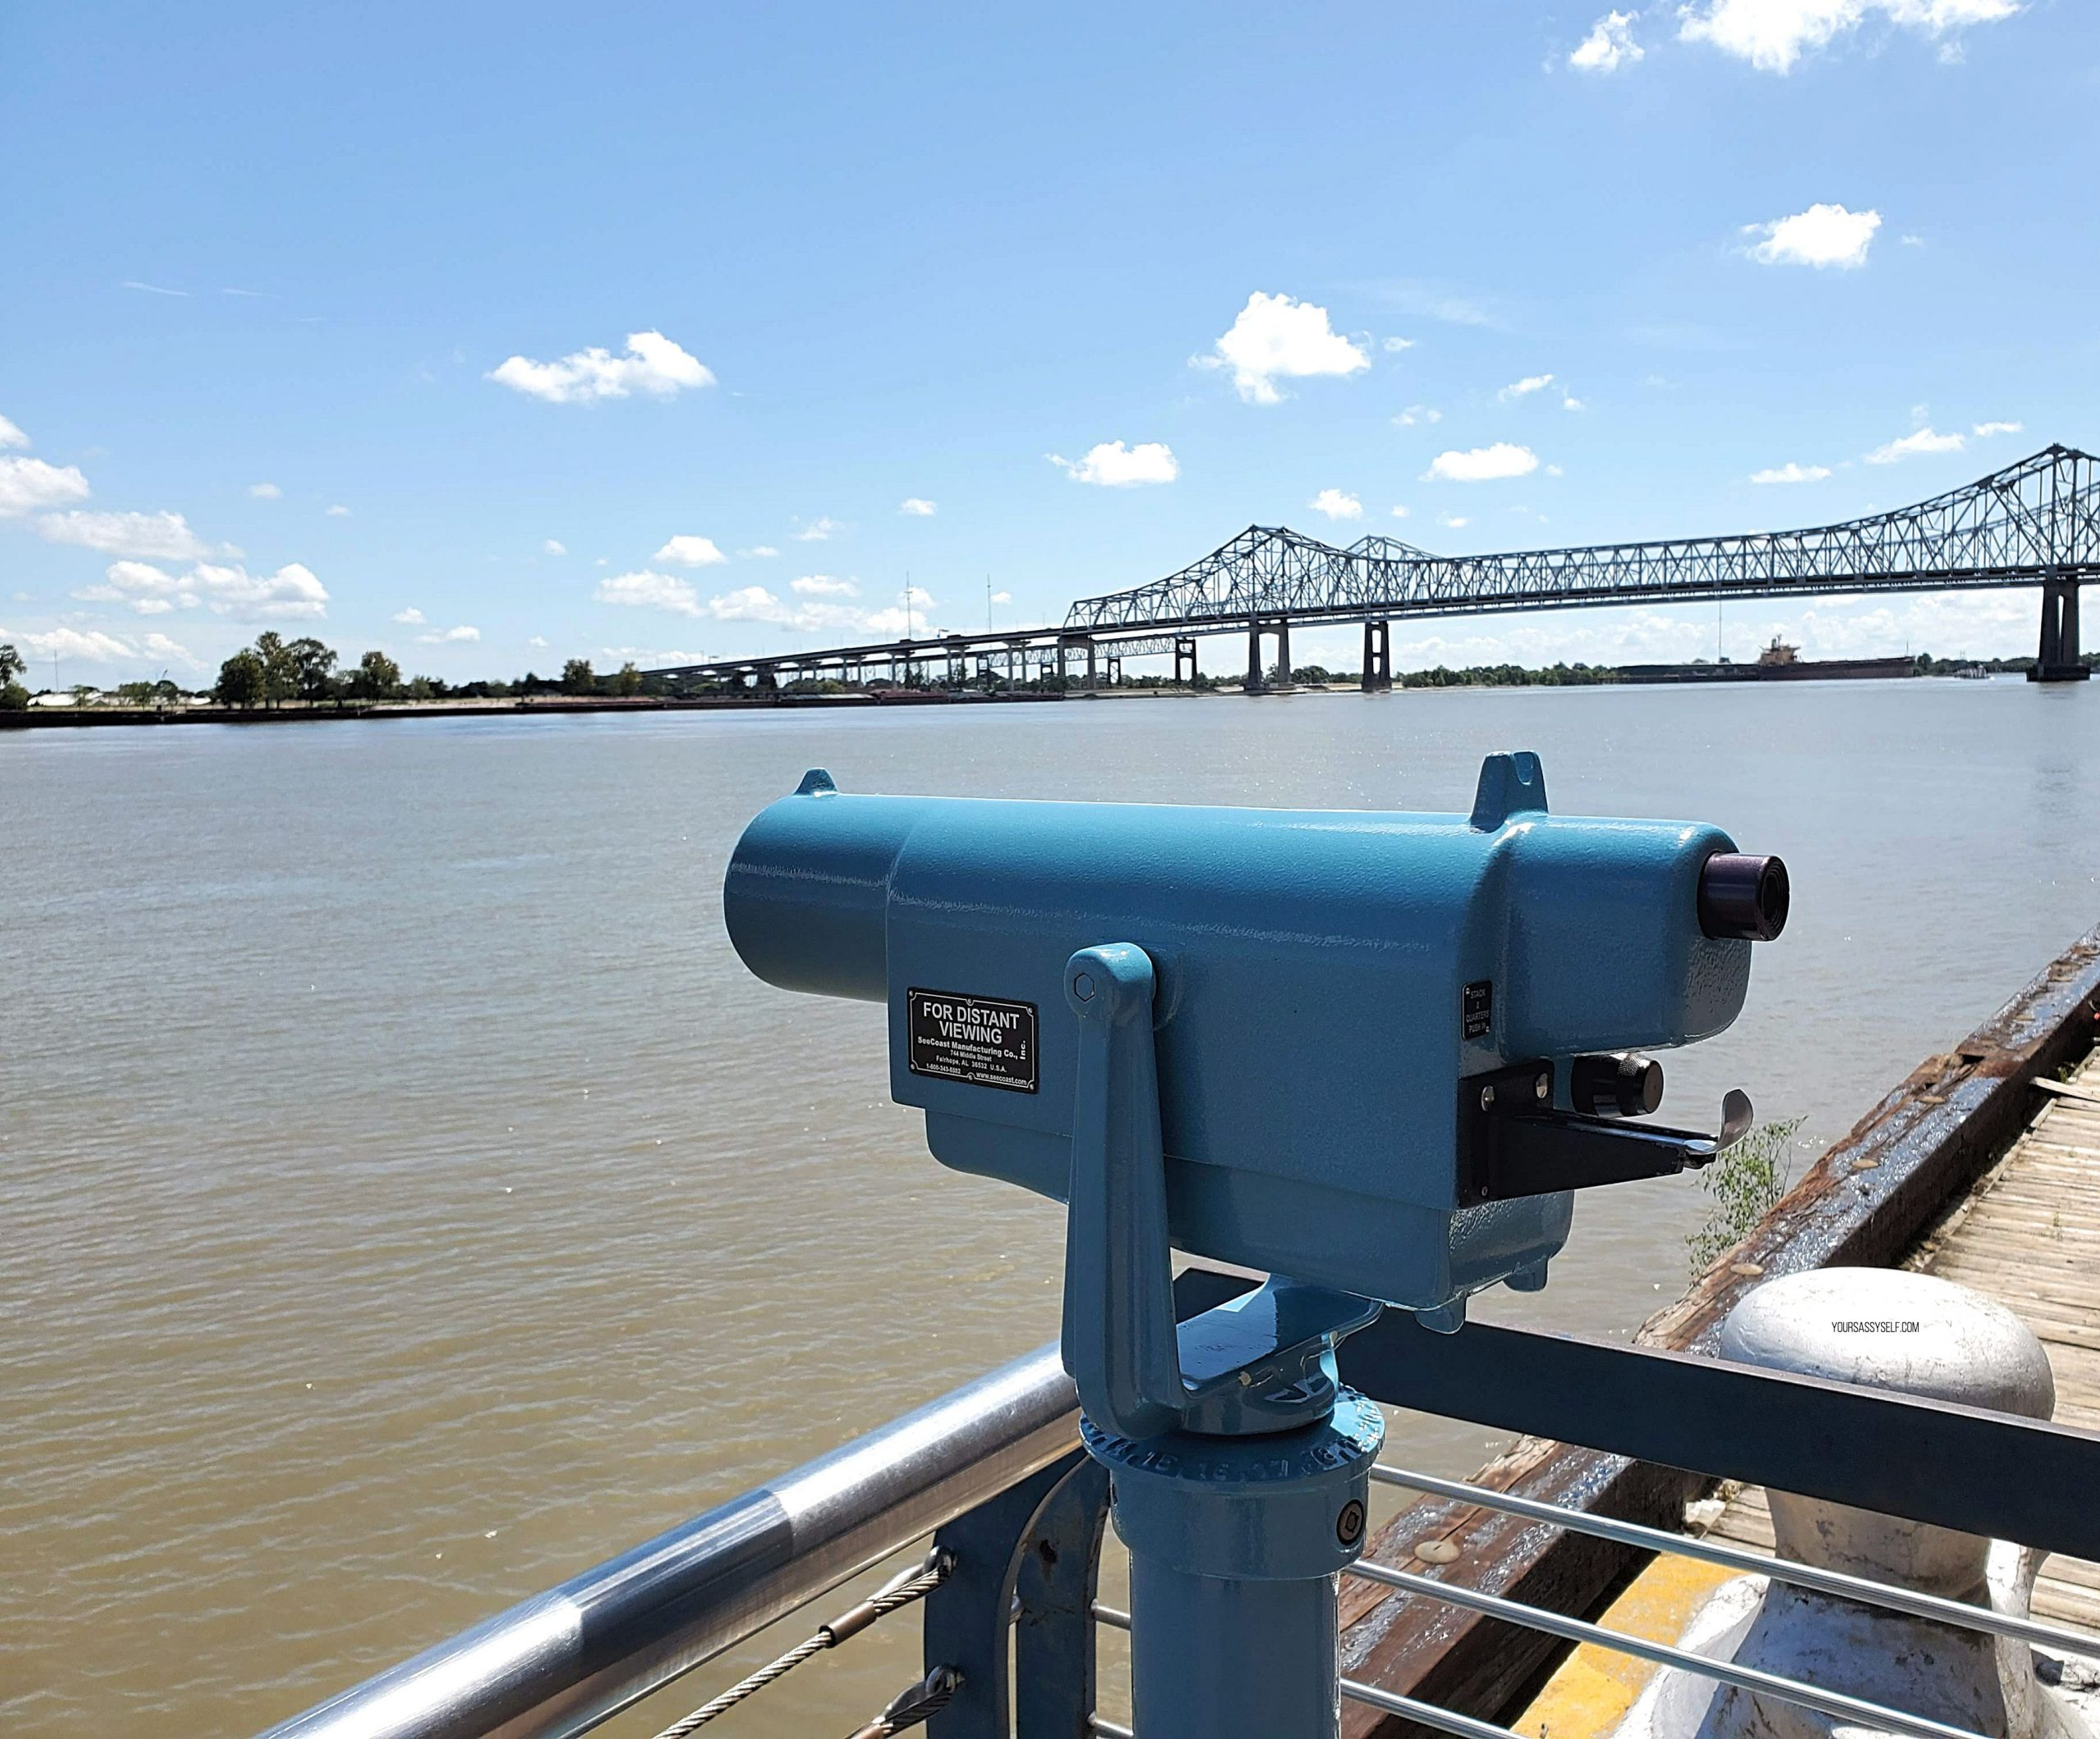 Telescope along the Mississippi - yoursassyself.com